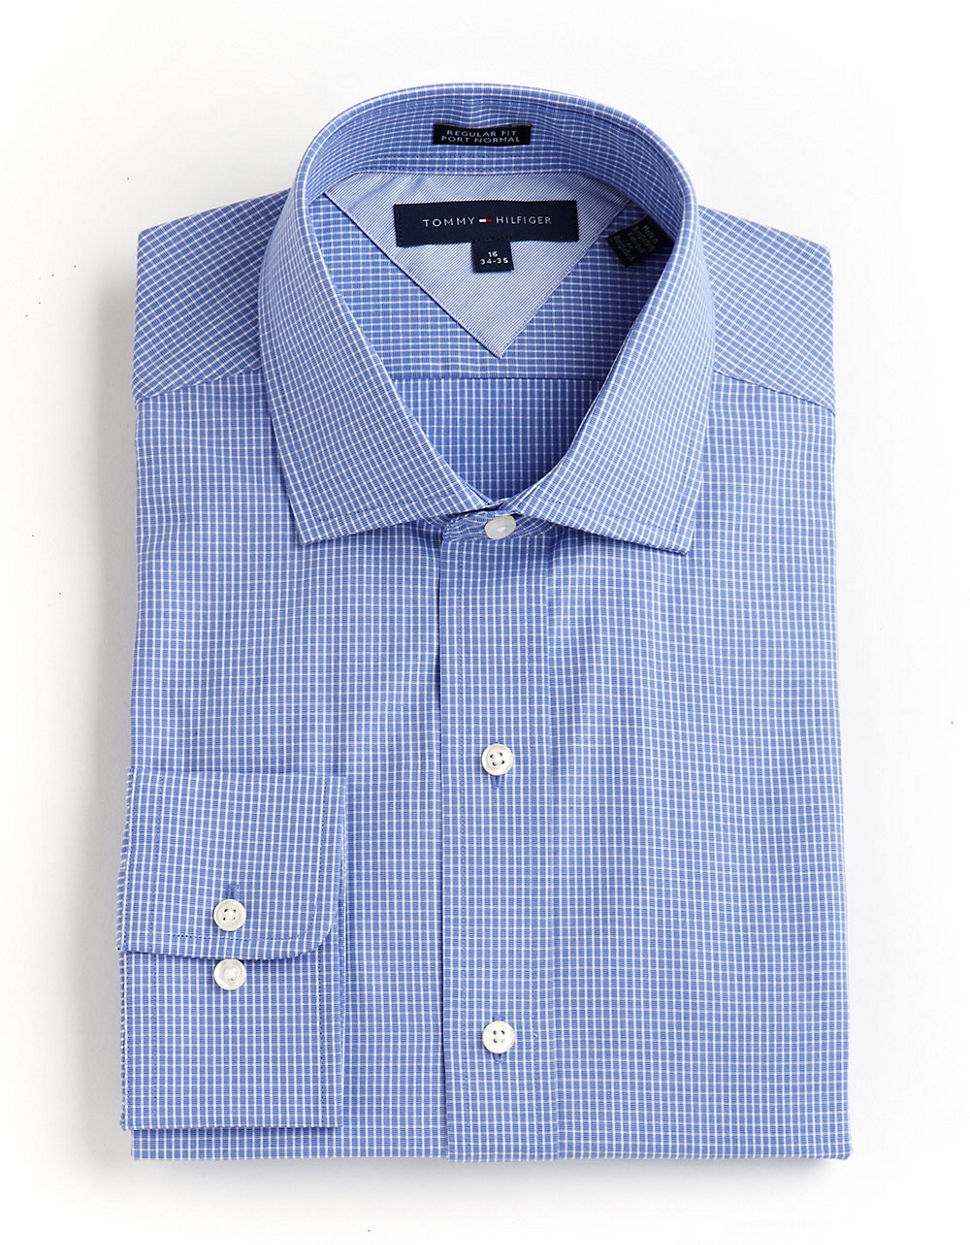 Tommy hilfiger Tommy Hilfiger Ls Regular Fit Dress Shirt blue 155  32/33